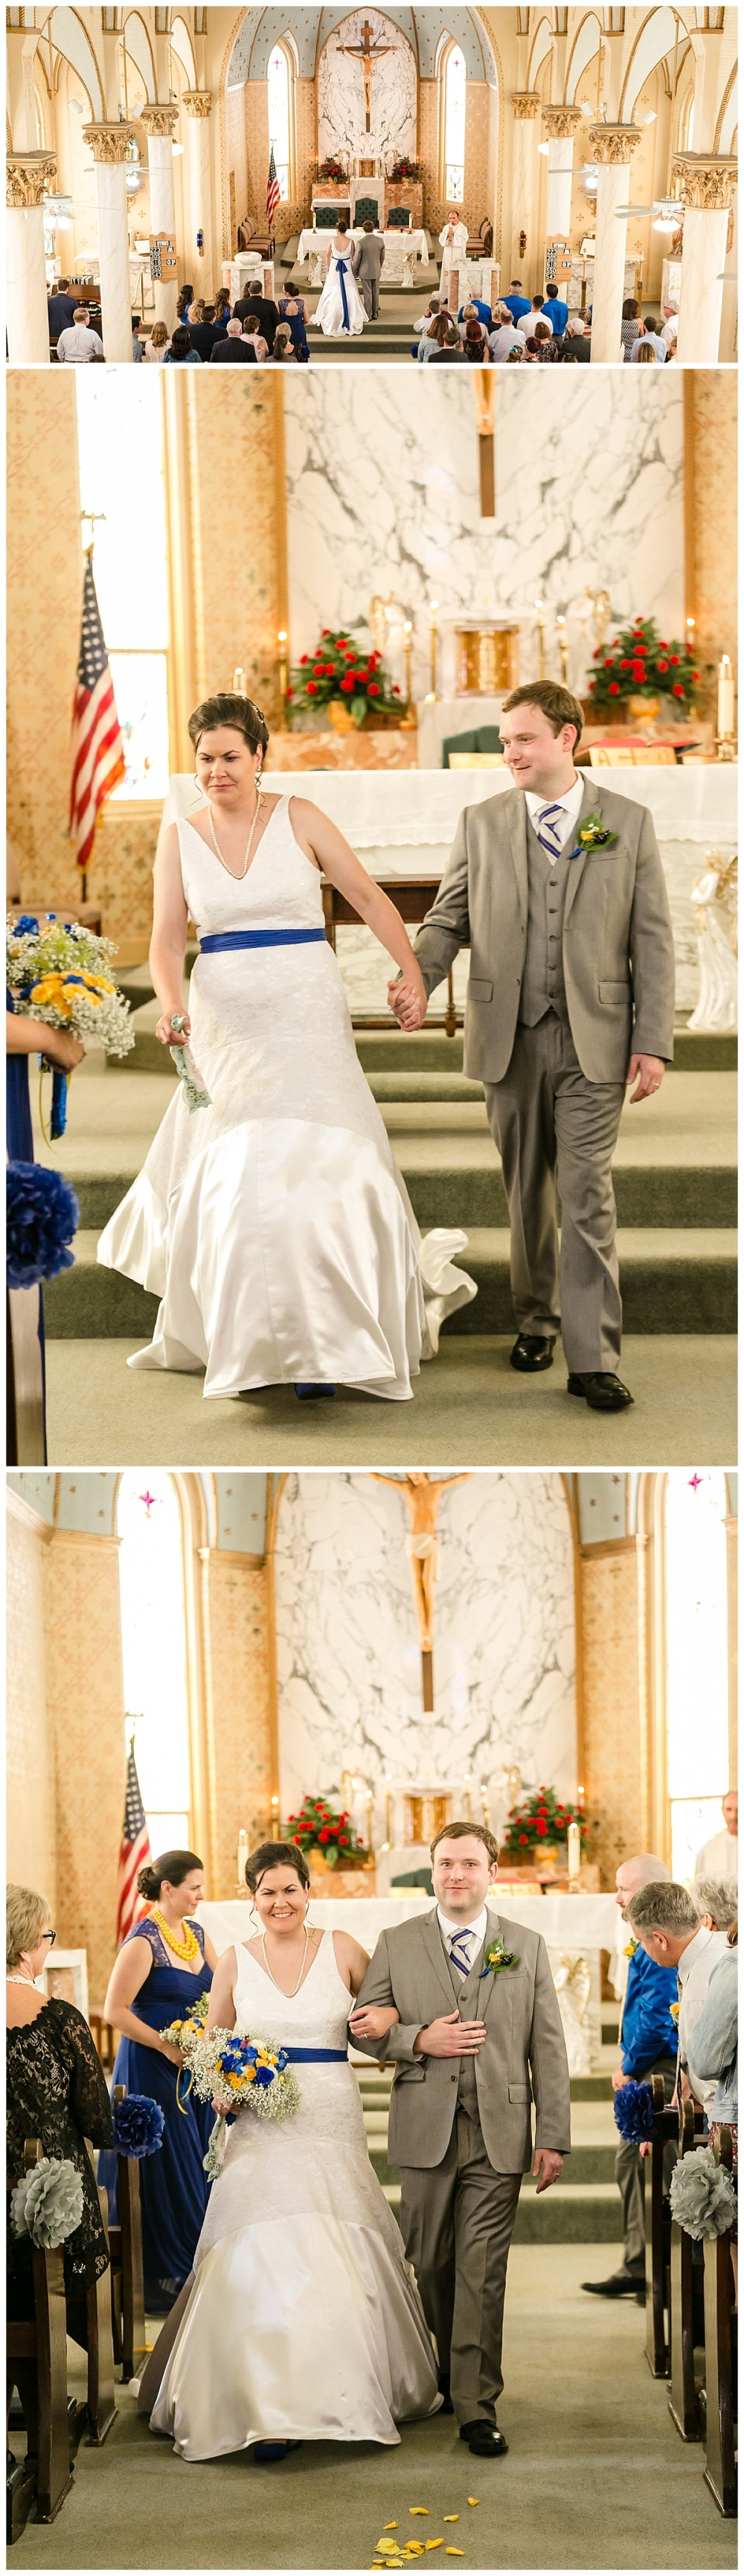 Texas-Wedding-Photographer-La-Coste-Our-Lady-Of-Grace-Church-Bride-Groom-Lego-Theme-Carly-Barton-Photography_0062.jpg